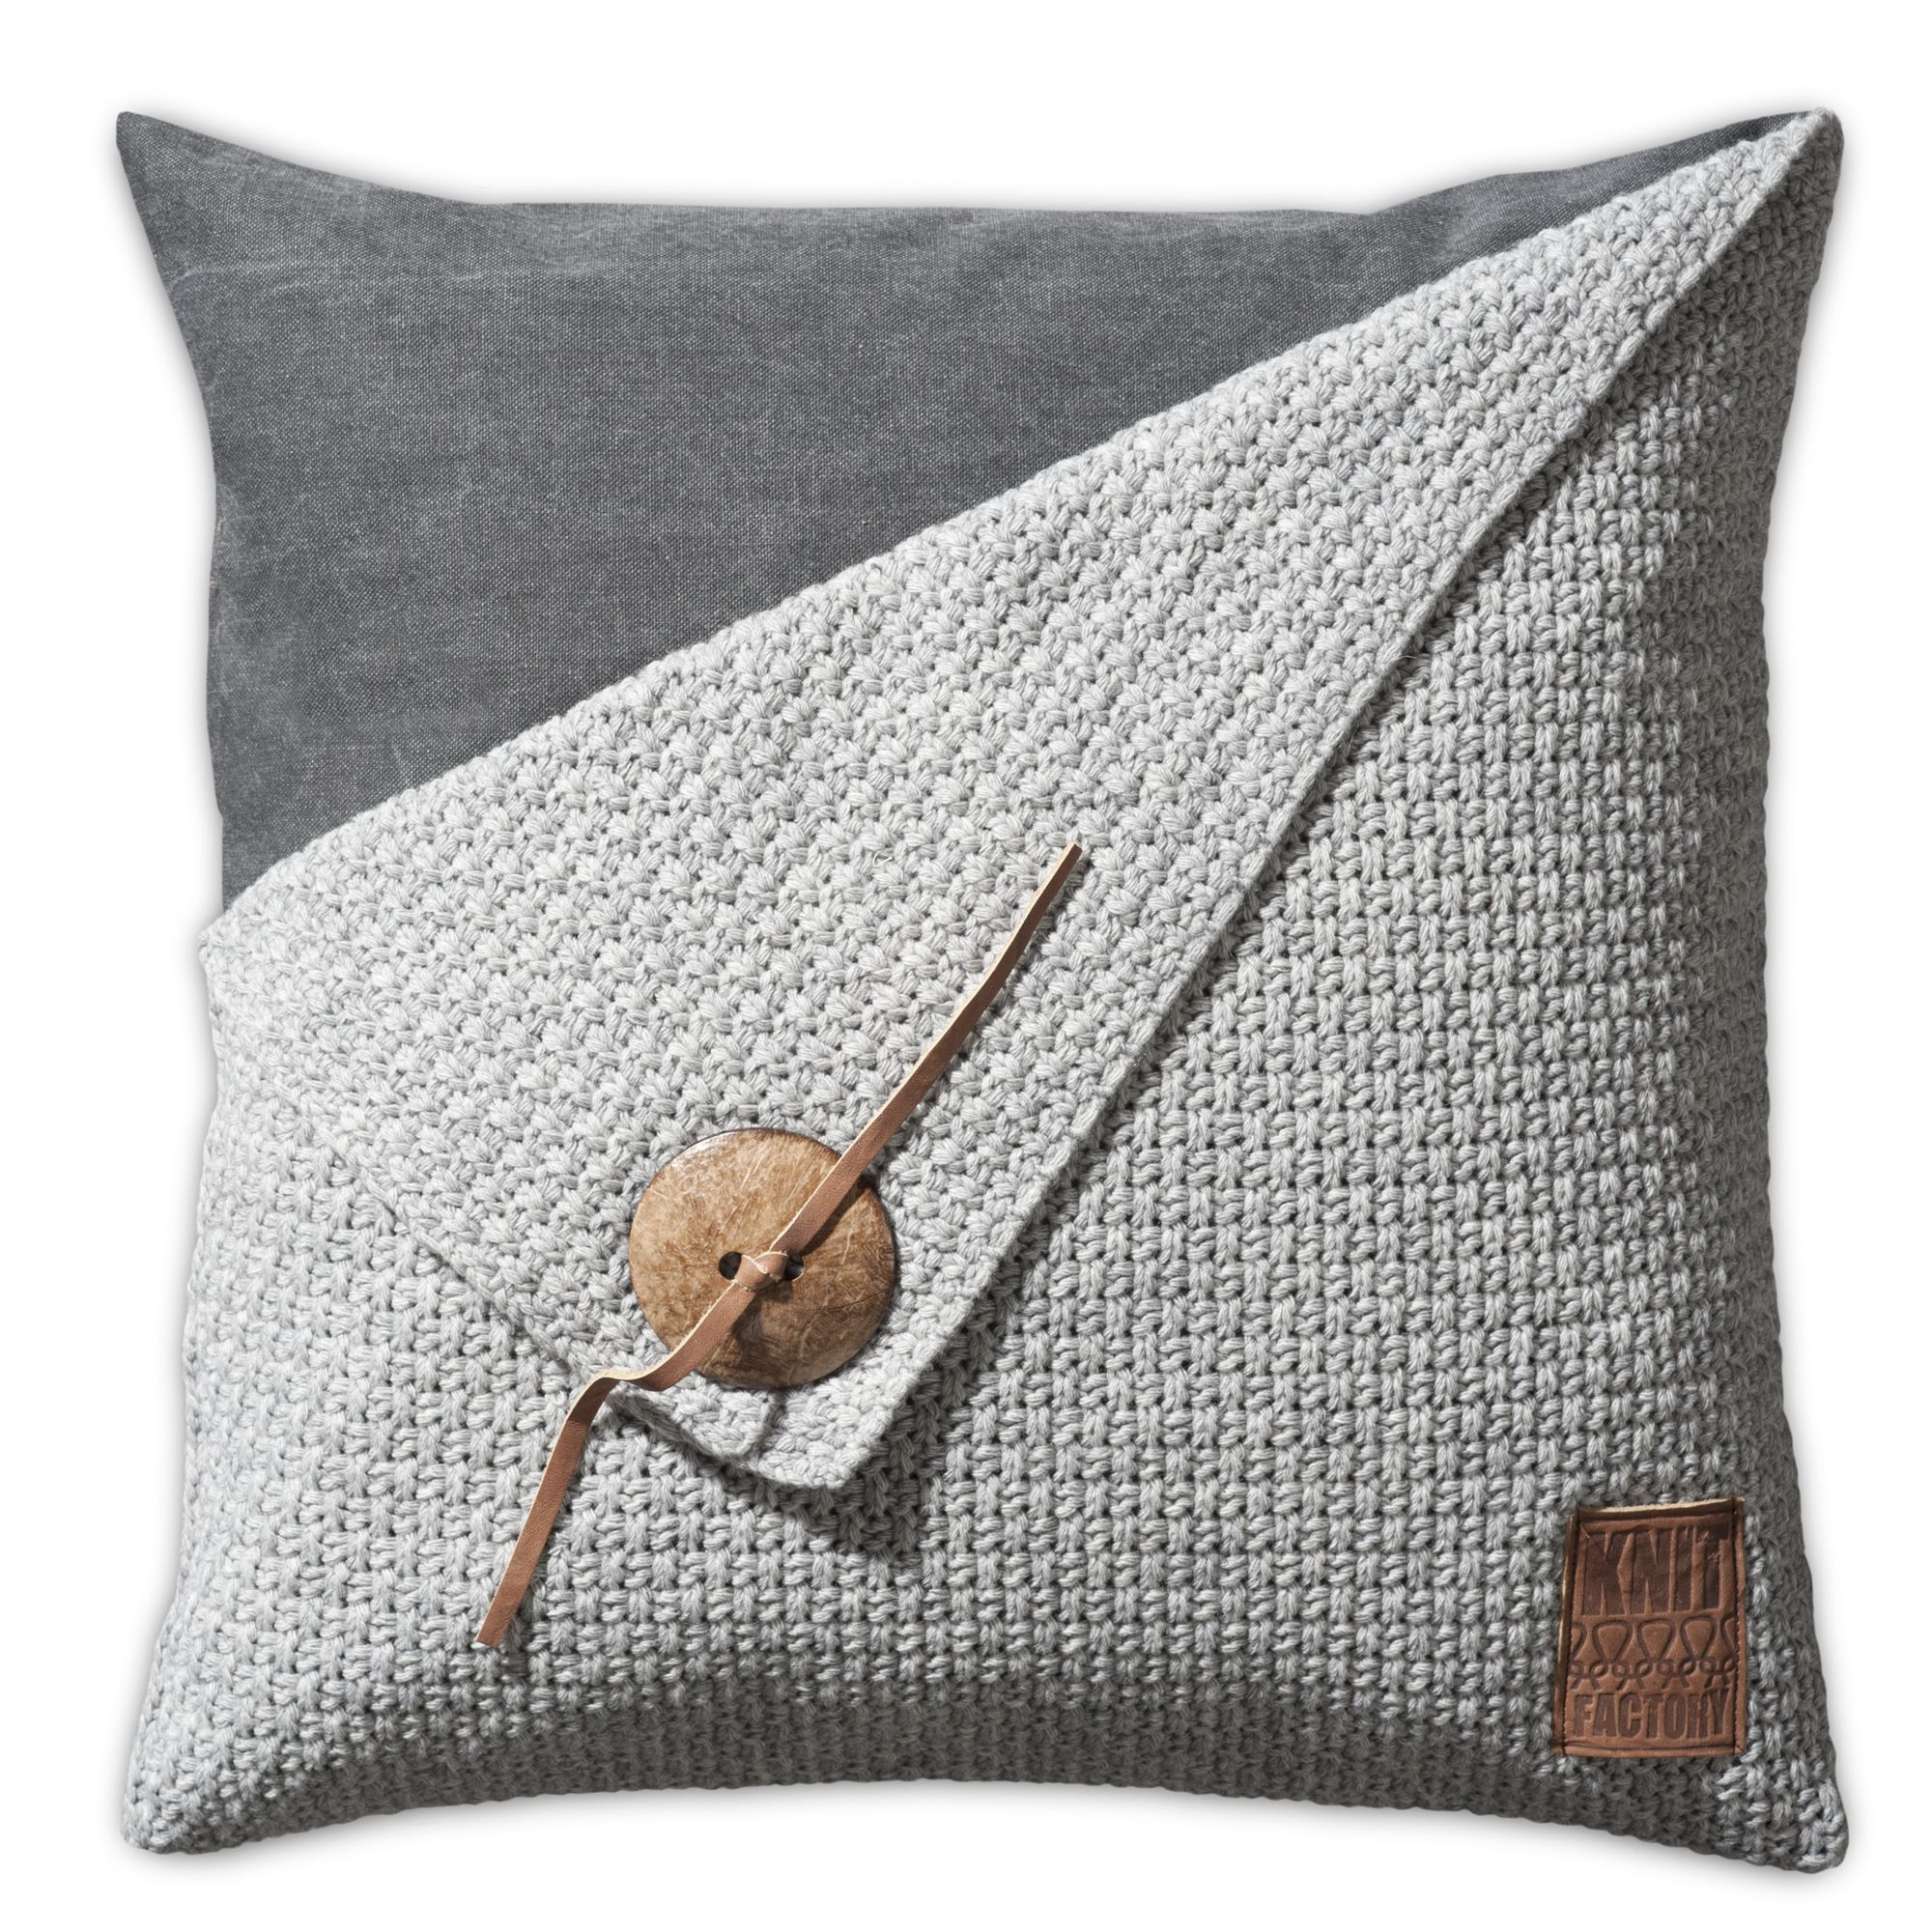 pillow 50x50 gerstekorrel light grey by knit factory www. Black Bedroom Furniture Sets. Home Design Ideas